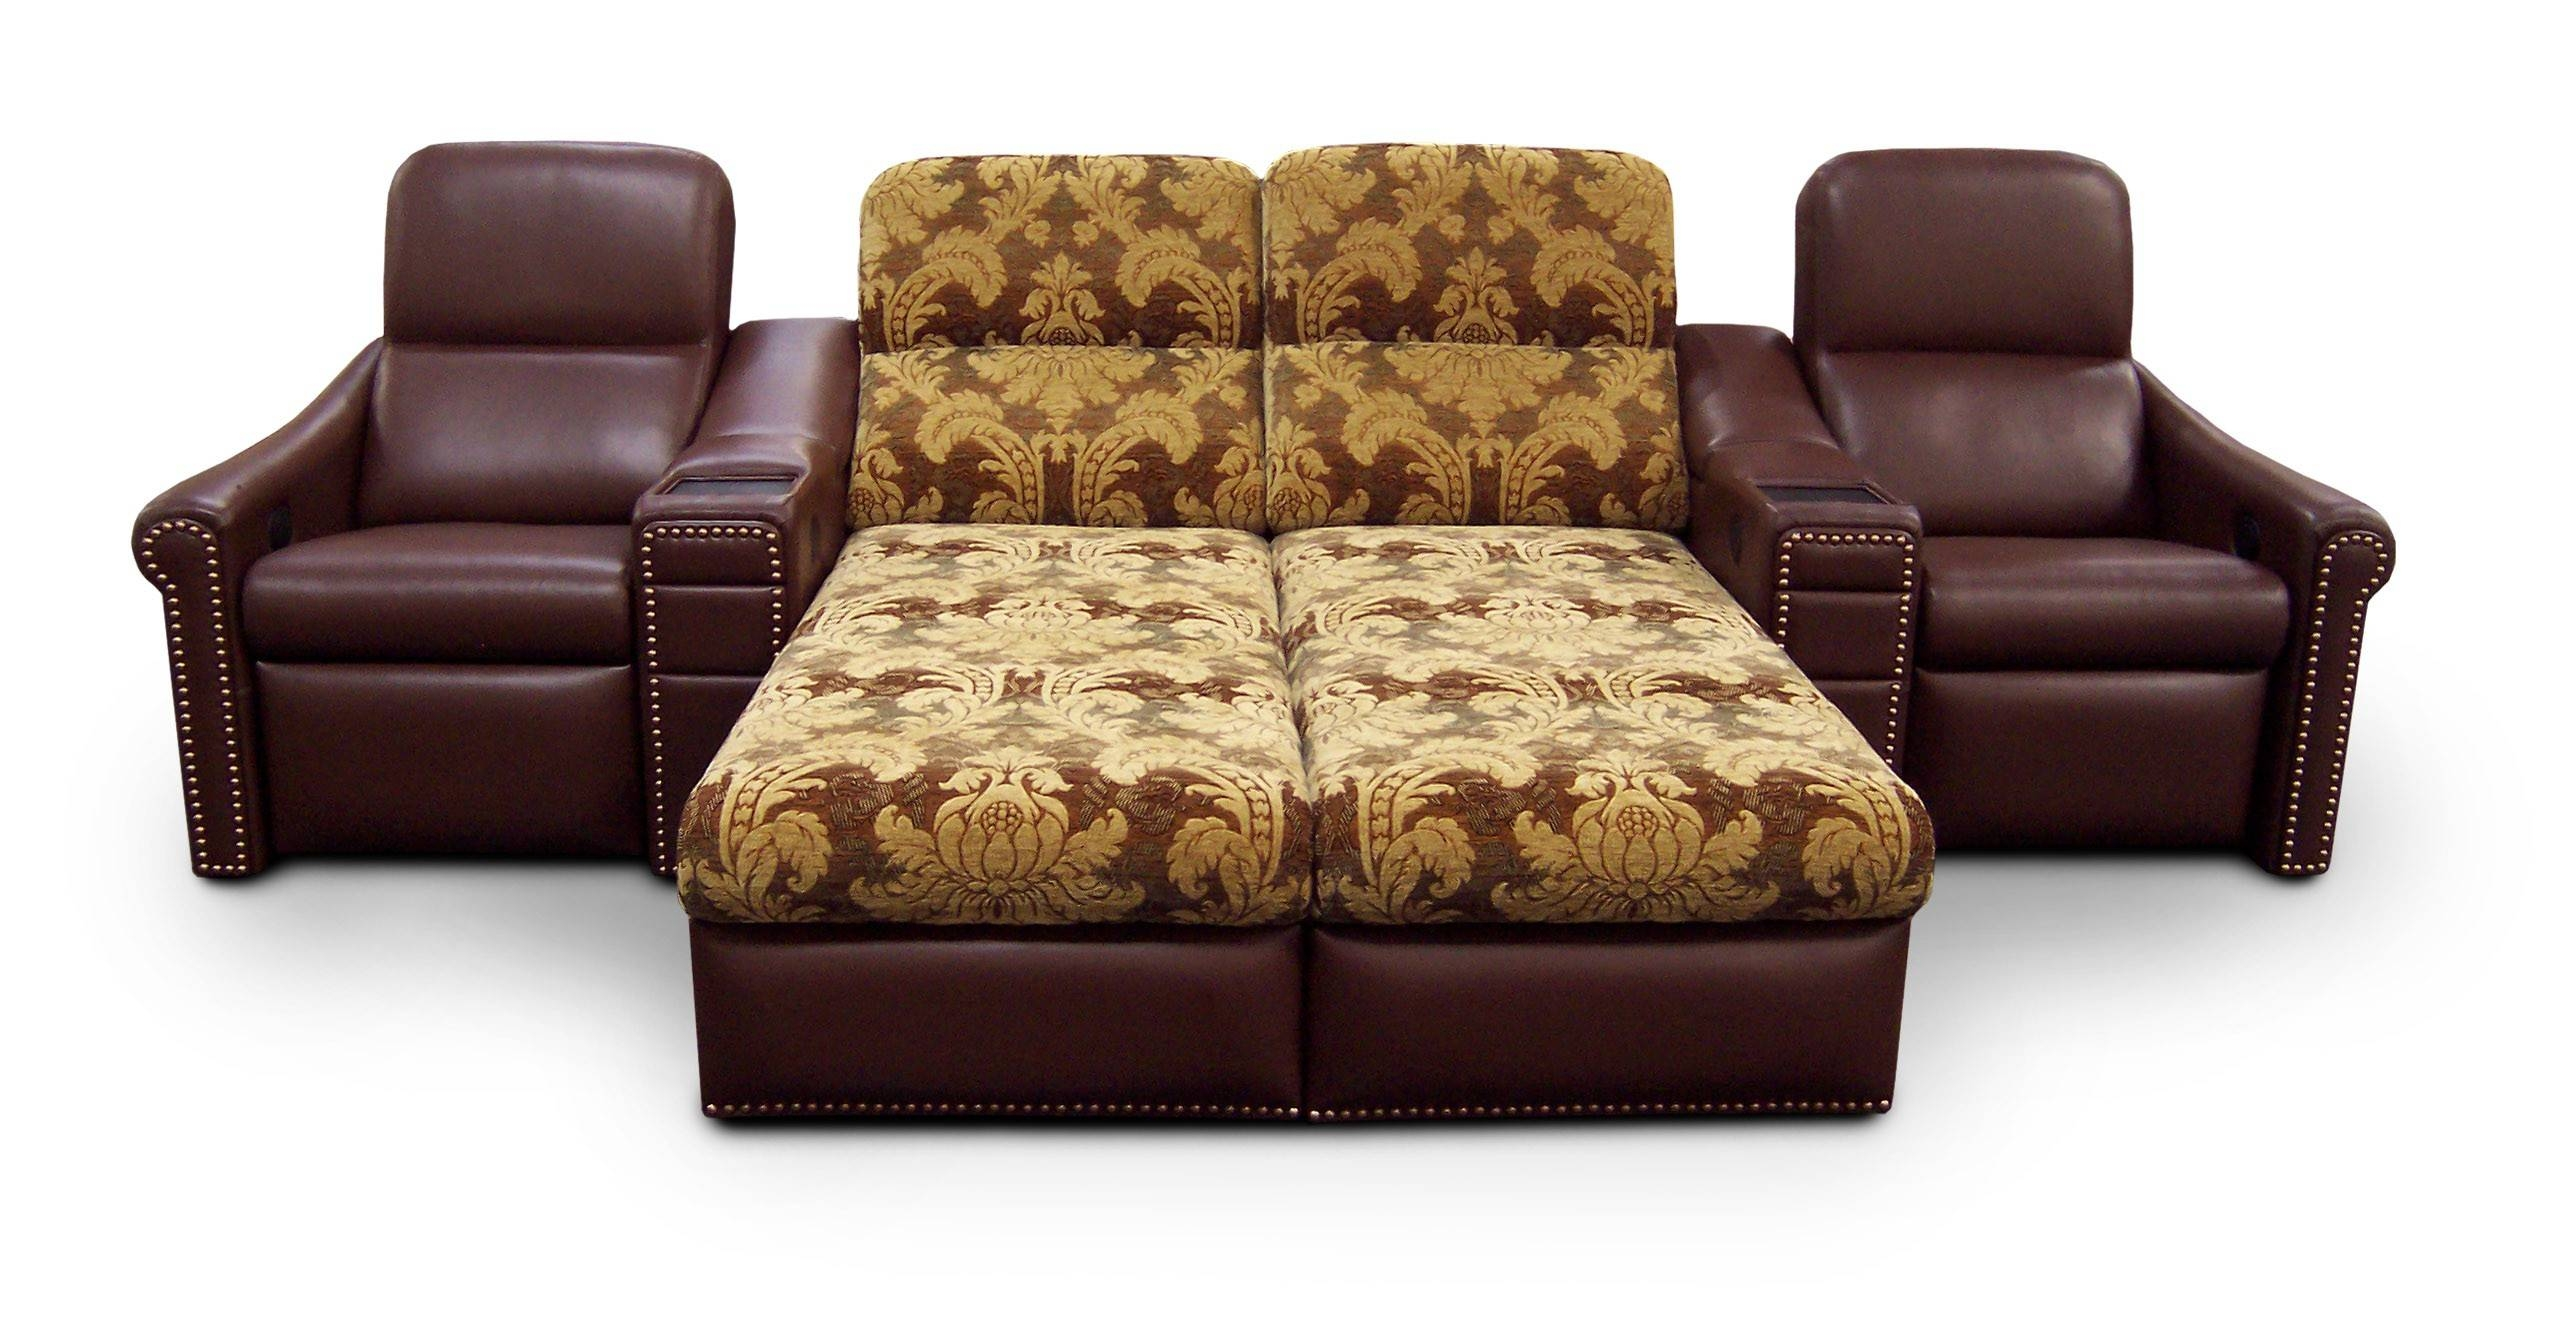 15 best ideas of chaise sofa chairs - Sofa bed with chaise lounge ...